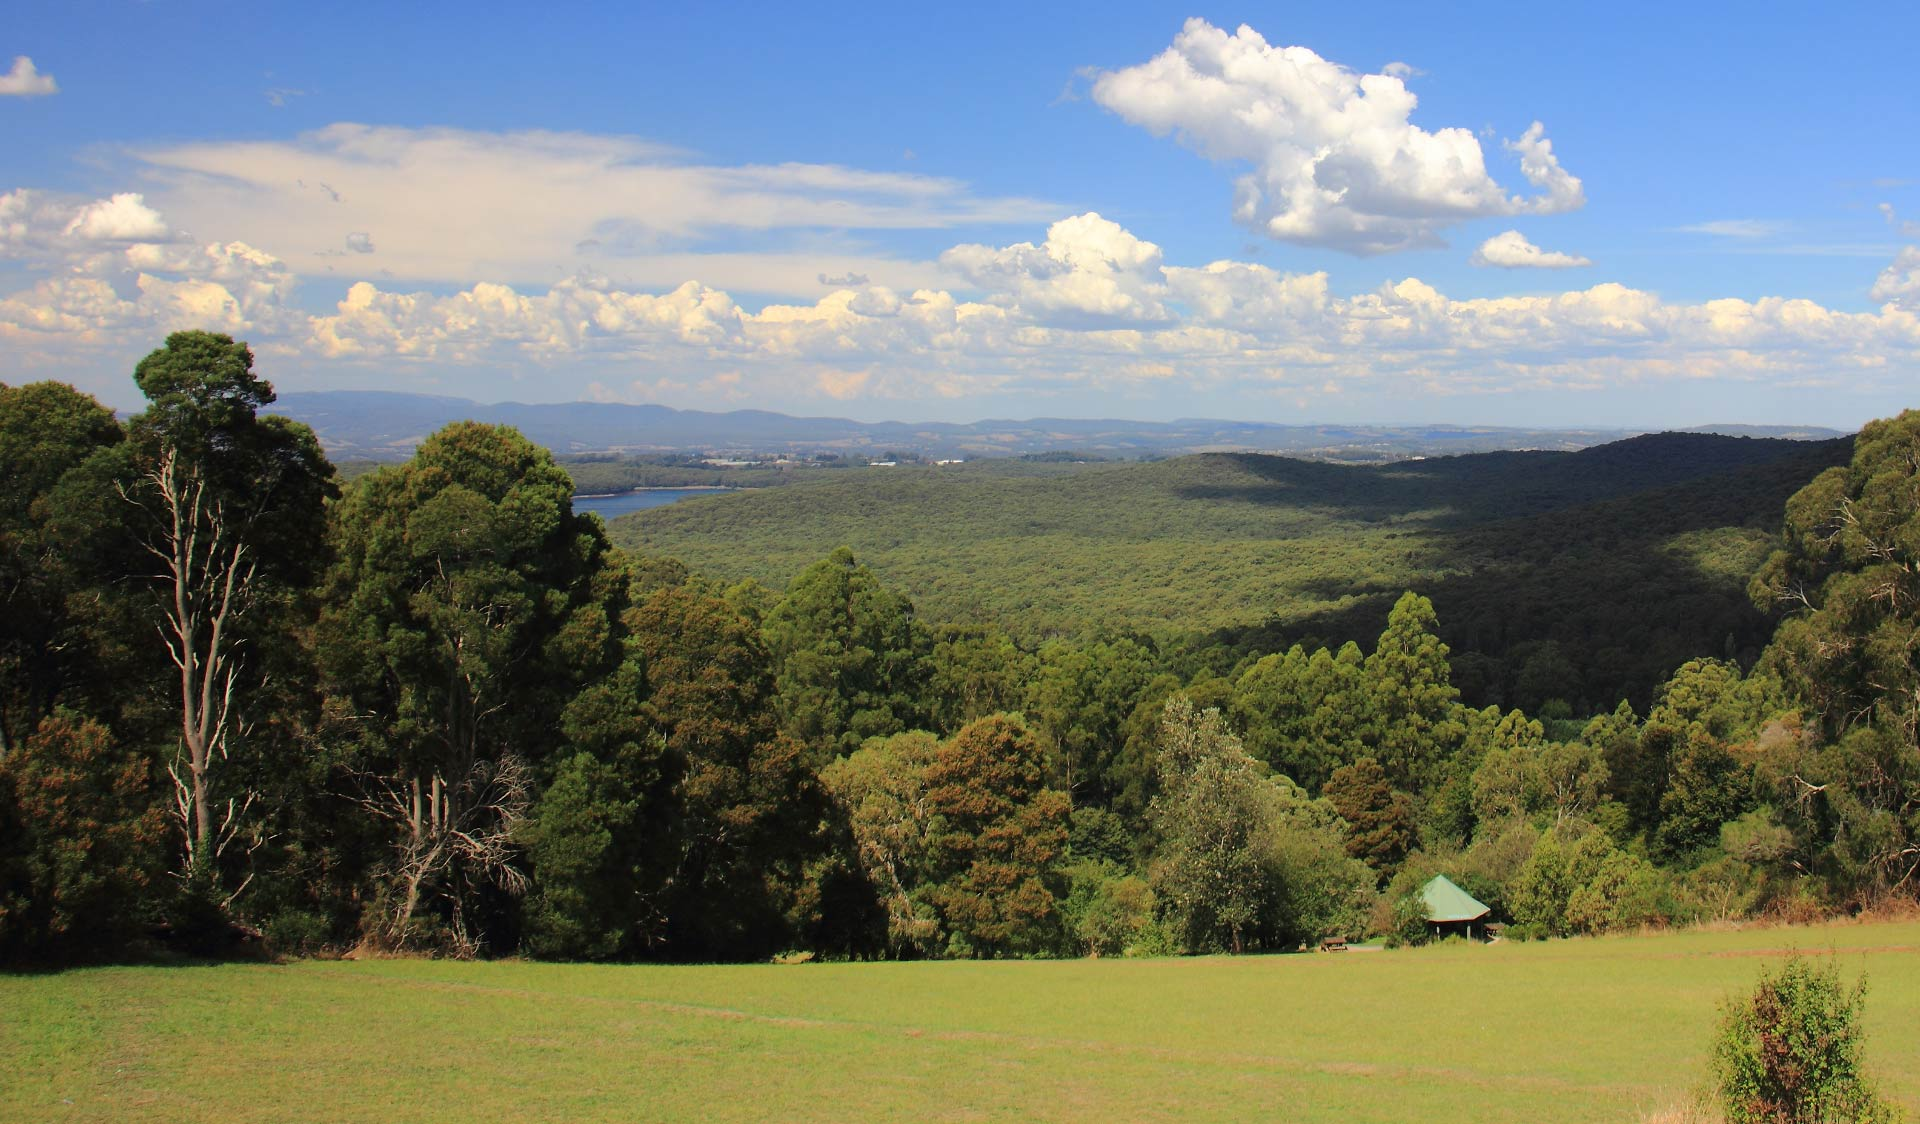 The stunning view from the top of Kalorama Park in the northern section of the Dandenong Ranges National Park.